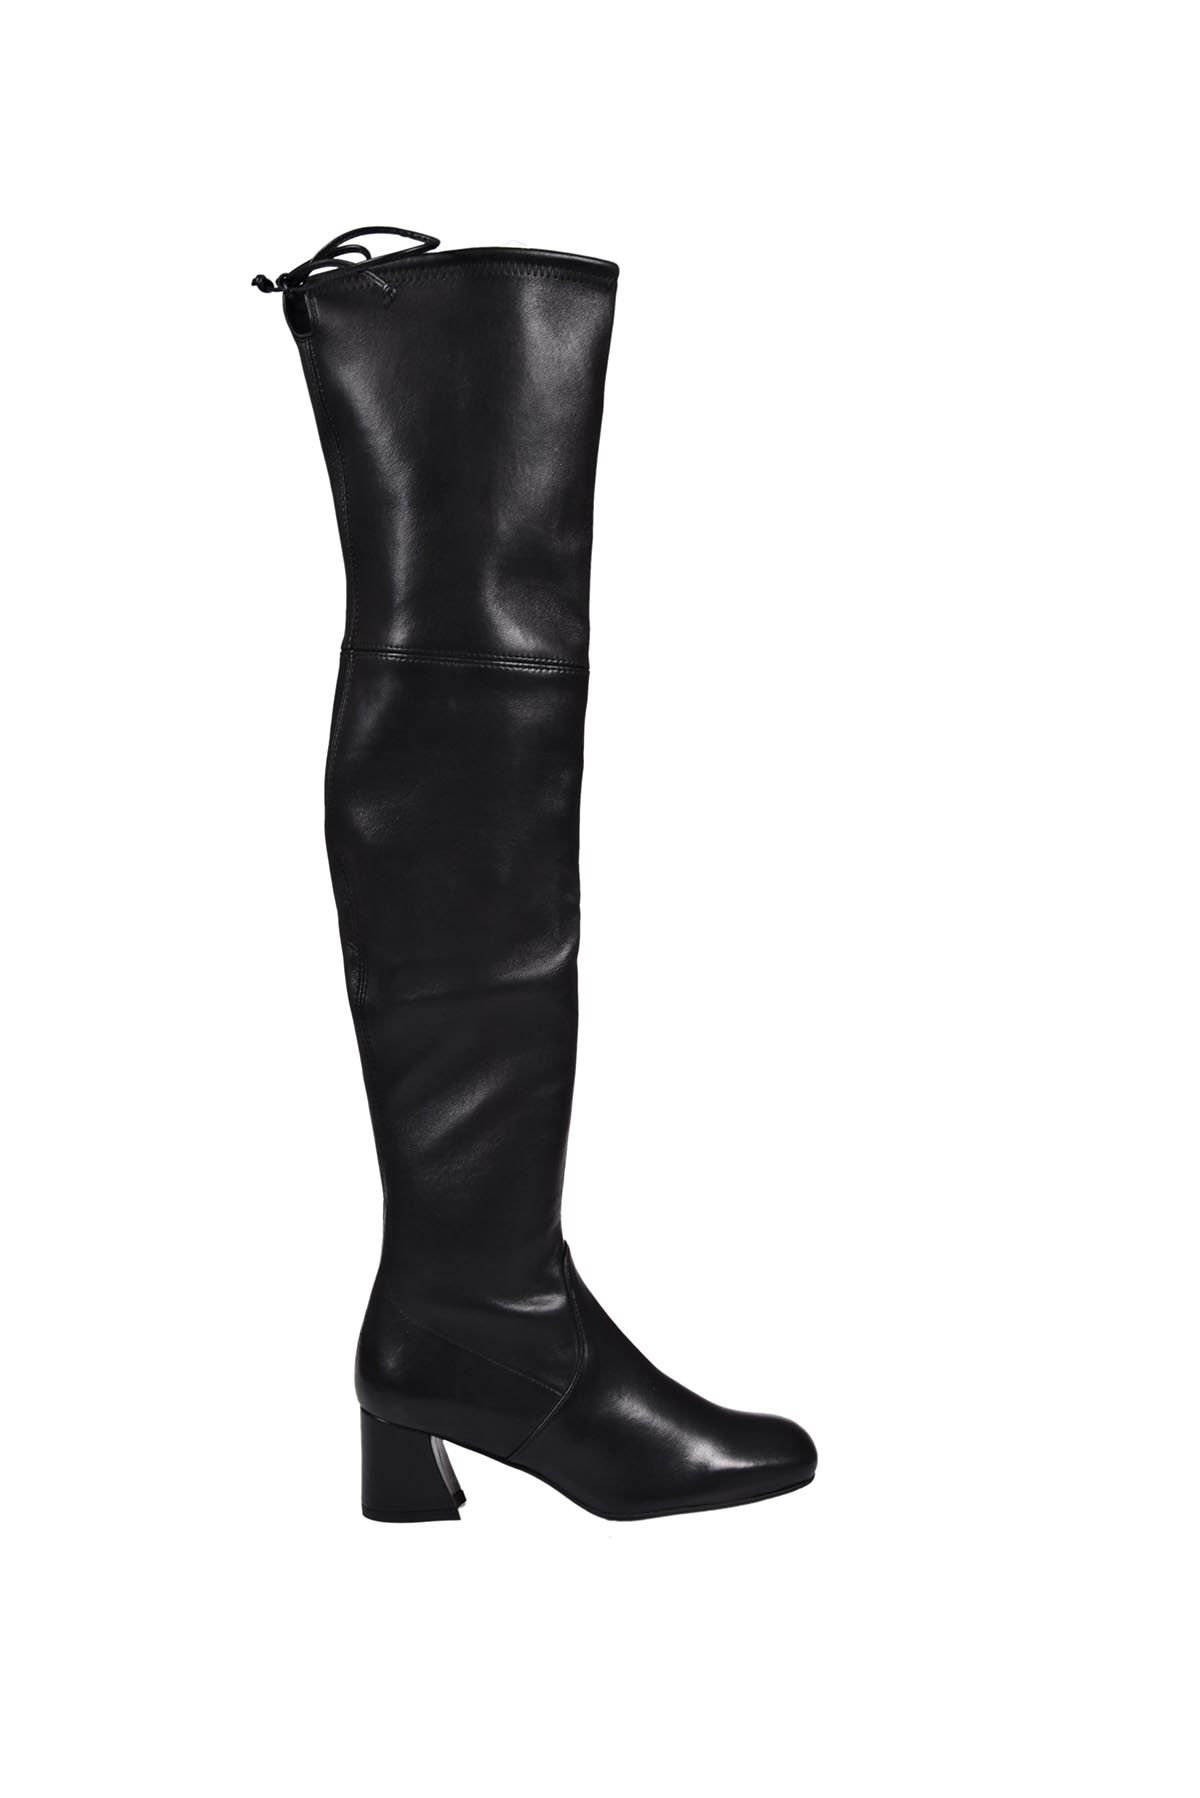 Stuart Weitzman Mylana Over-the-knee Boots